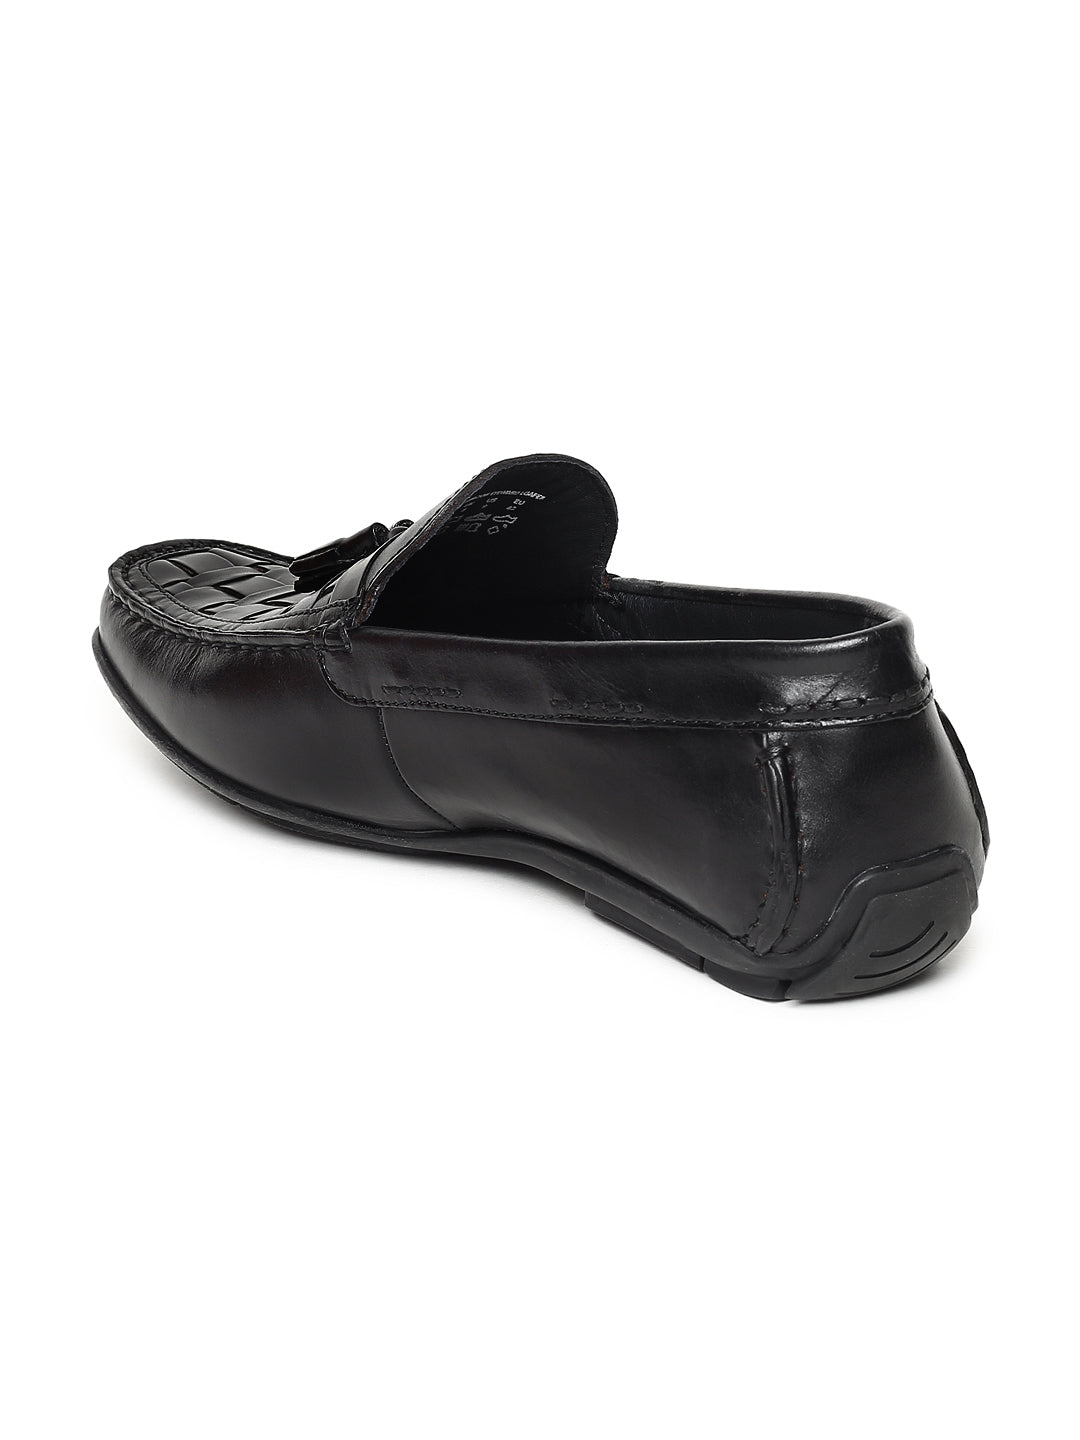 Hamilton Steward Loafer ( Black)